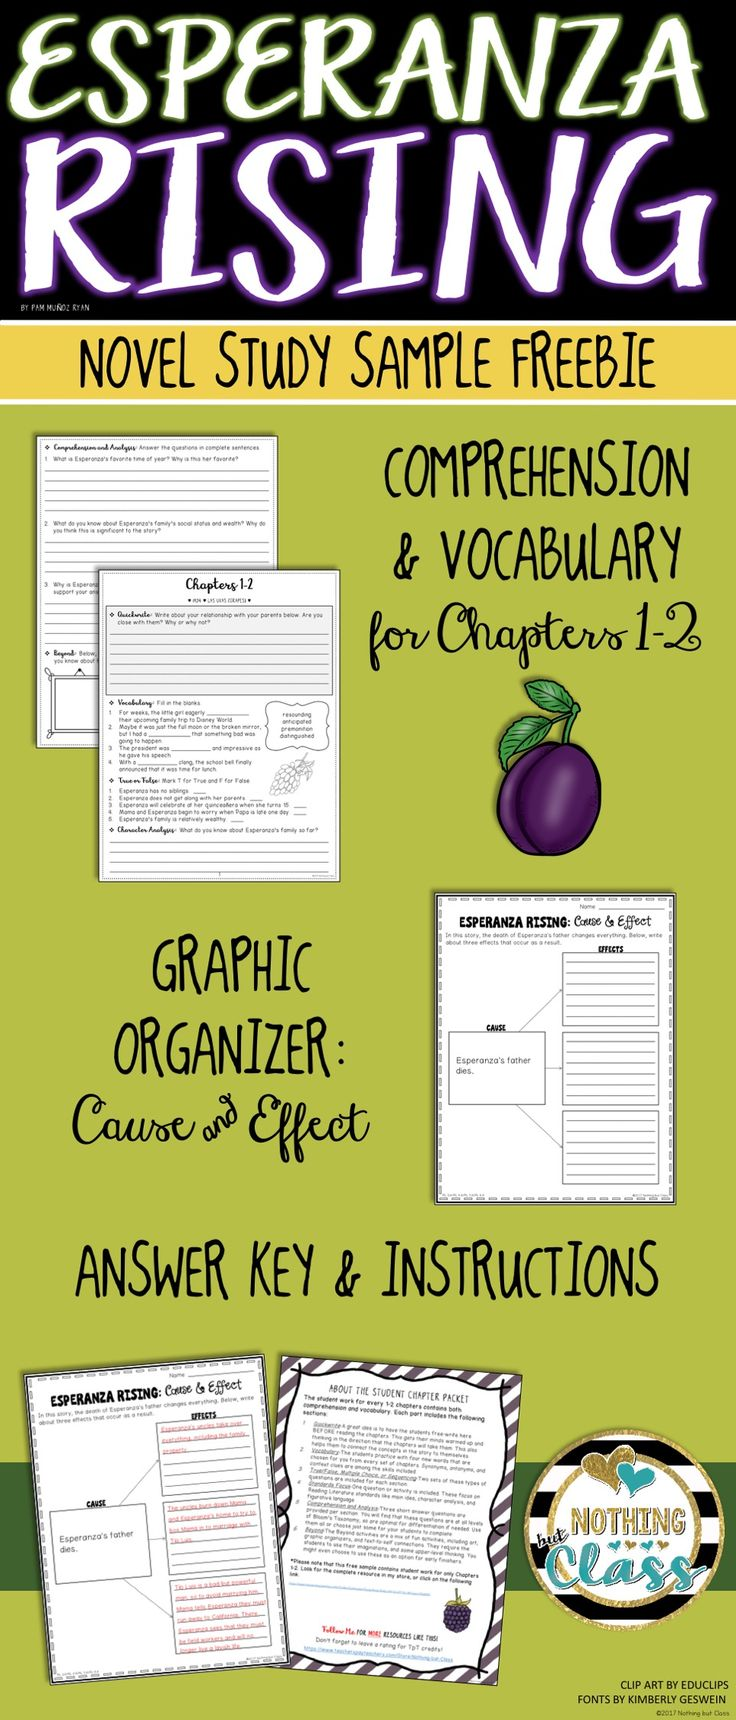 Flashlight cause and effect worksheet answers